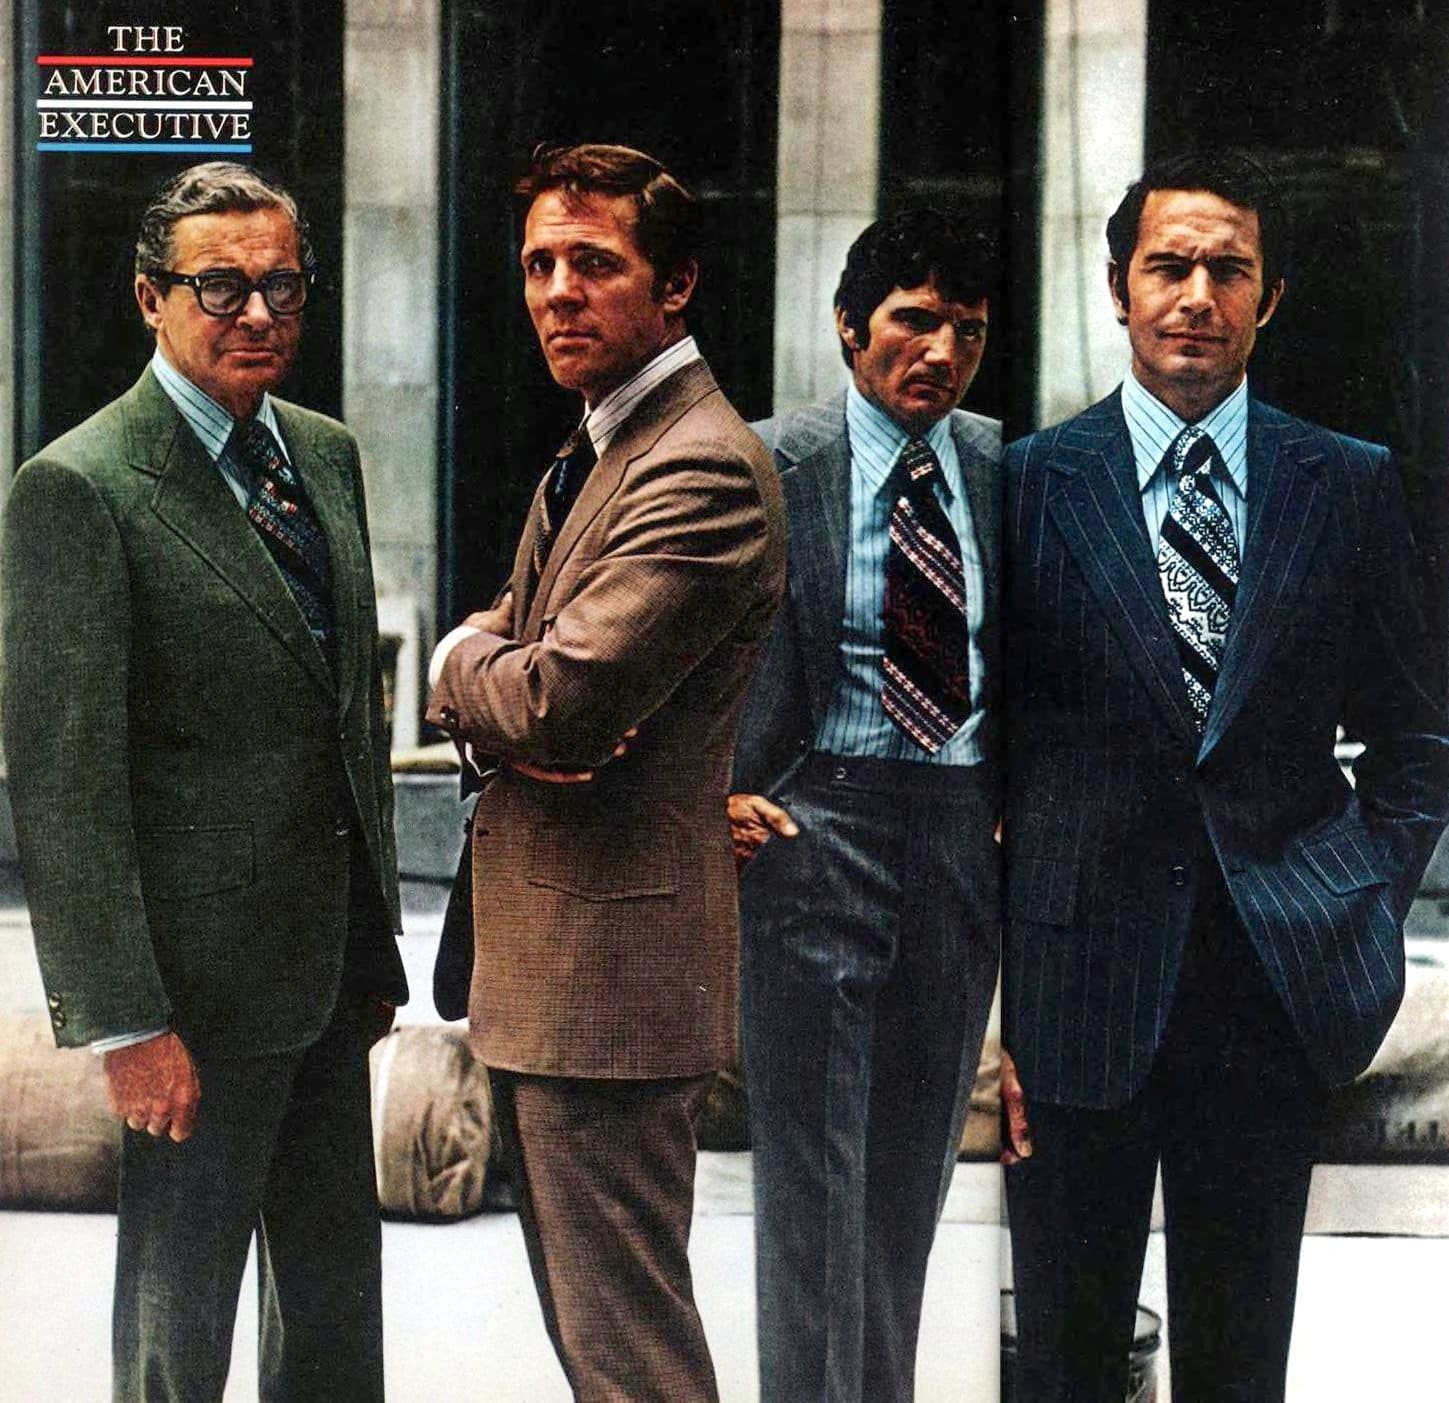 American executive fashion from 1973 - Vintage menswear